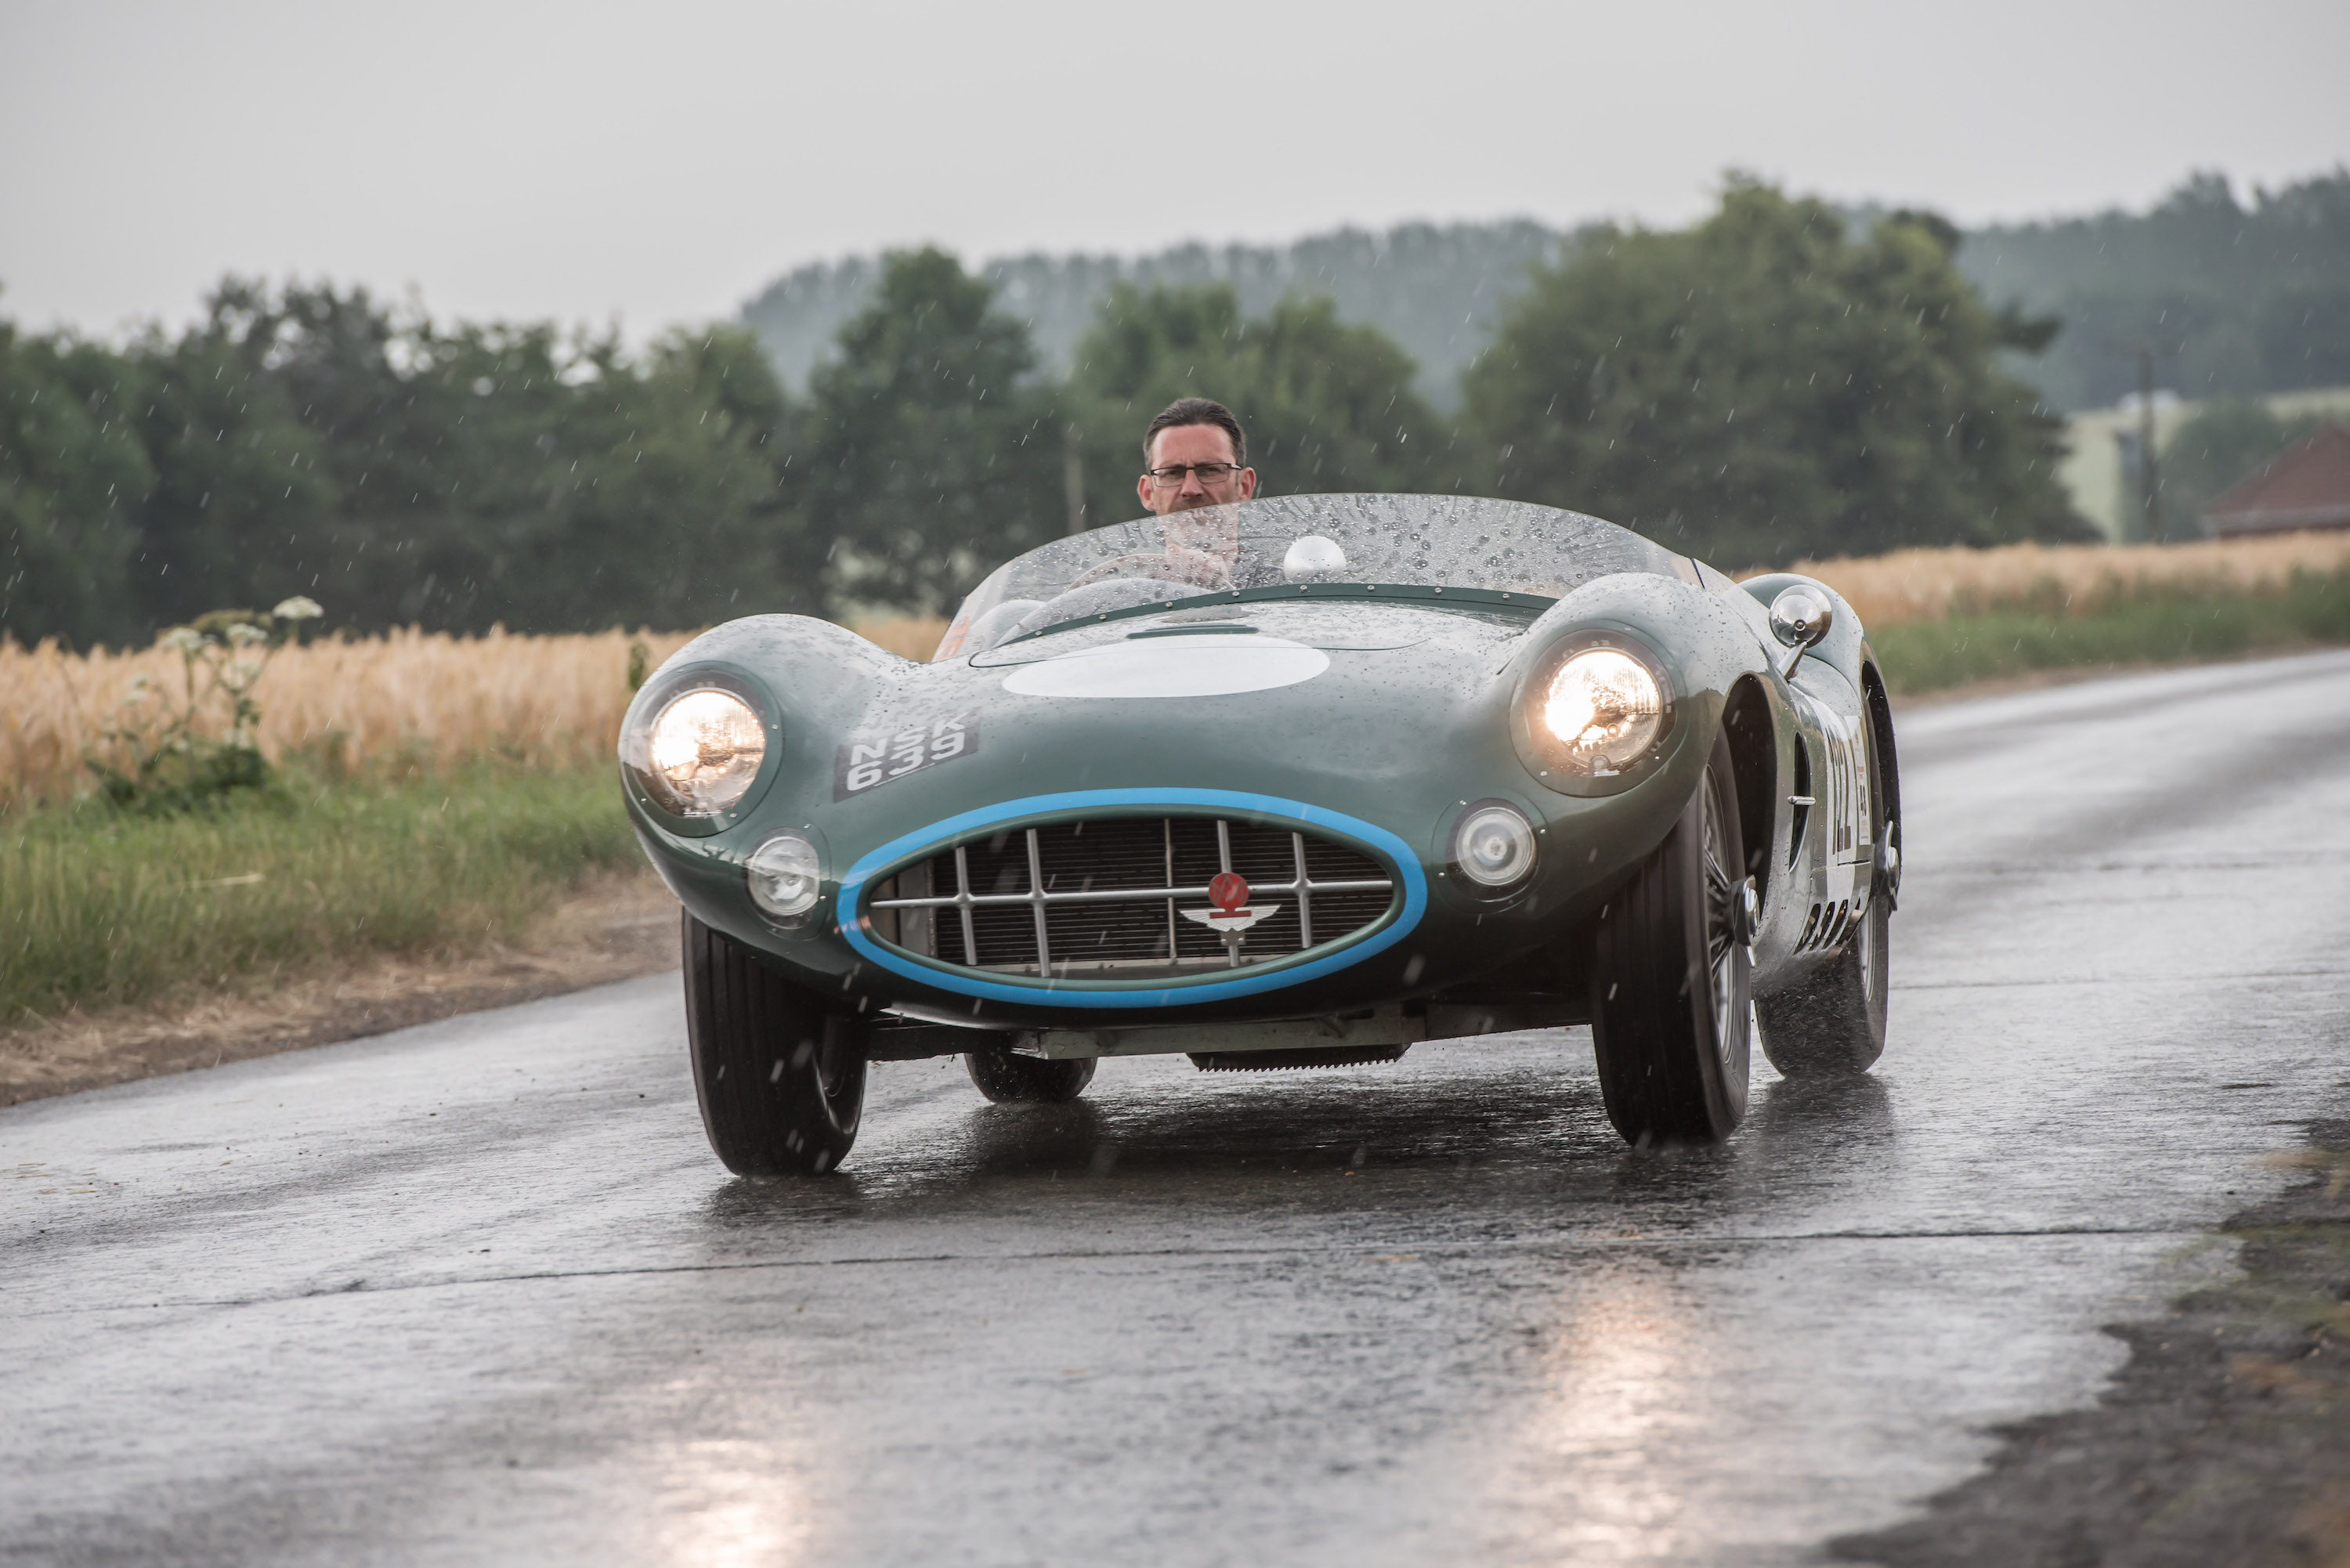 ASM R1 DBR1 driving rain